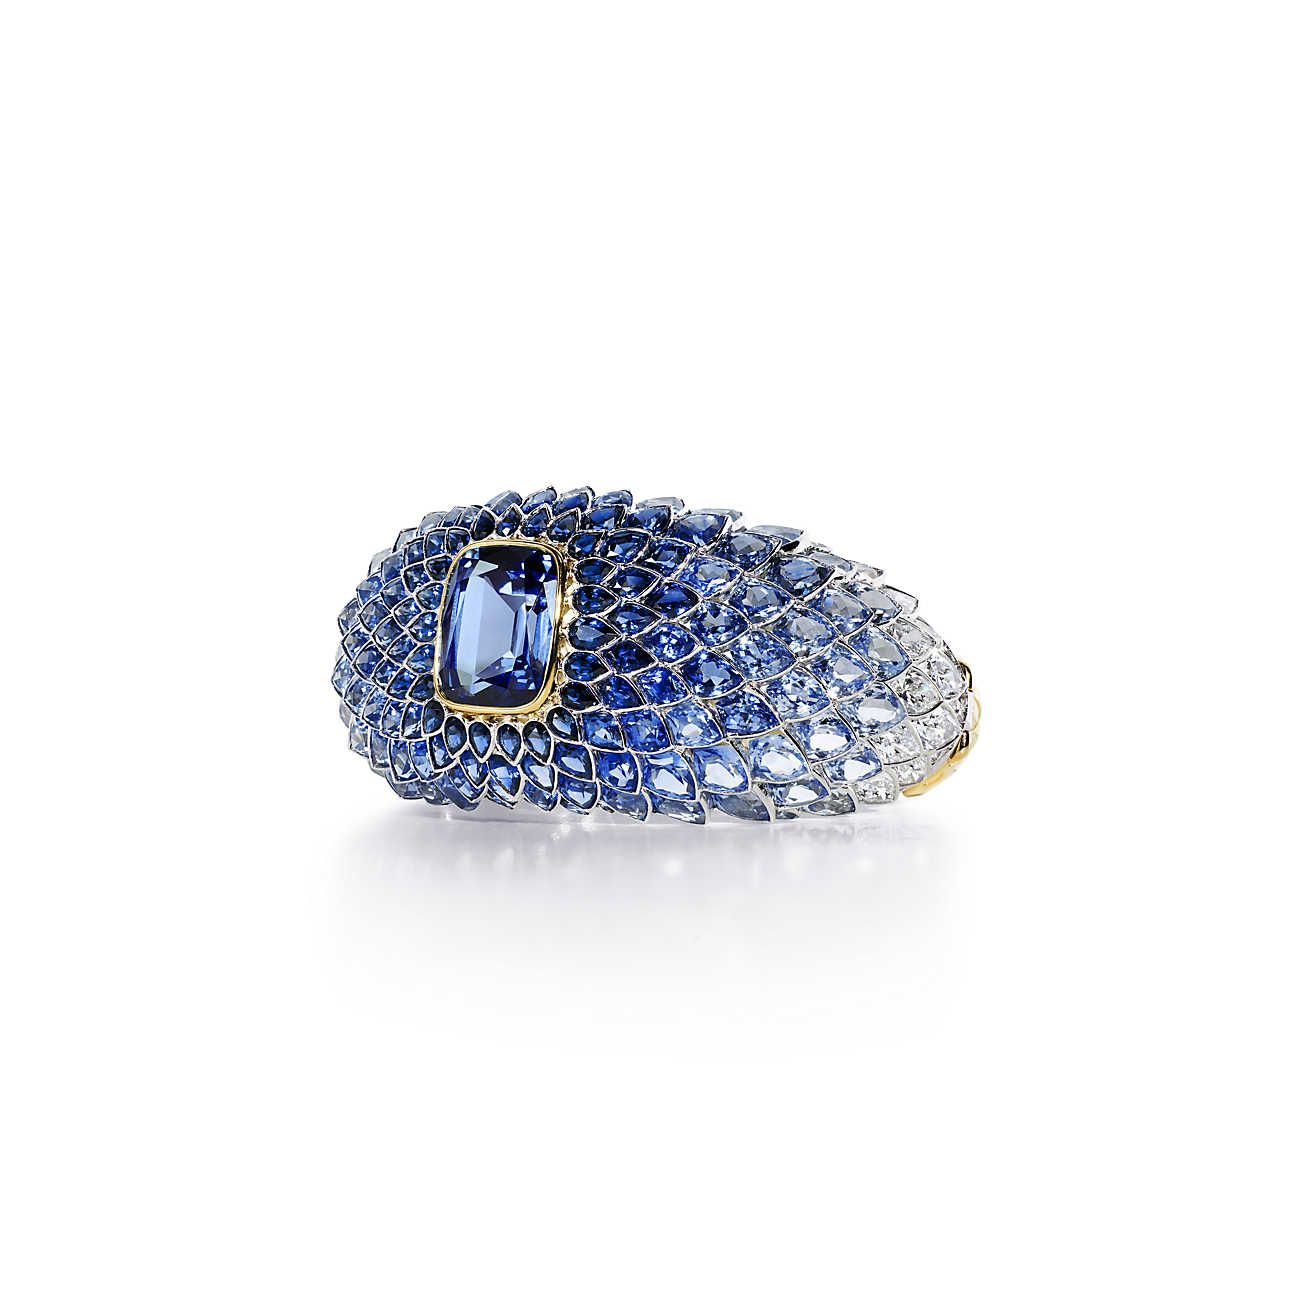 The art of the seablue spinel scales bracelet bracelets cushion